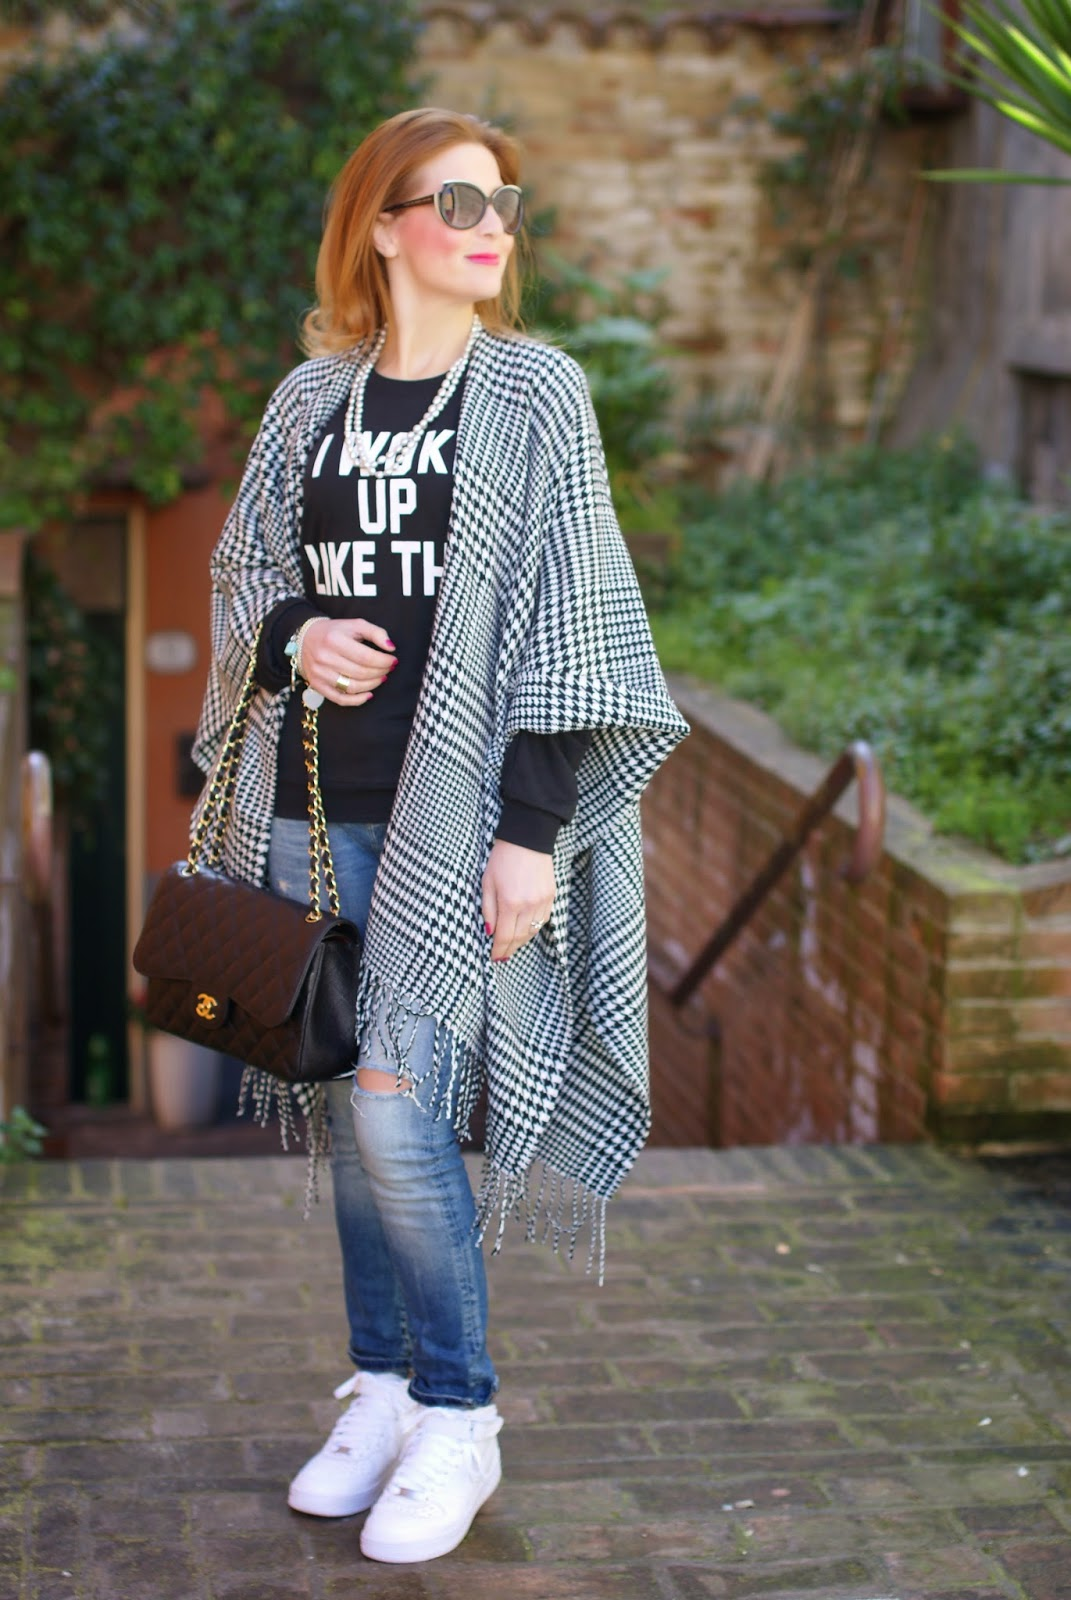 I woke up like this, Romwe t-shirt, silver pearls necklace, Chanel 2,55 bag on Fashion and Cookies fashion blog